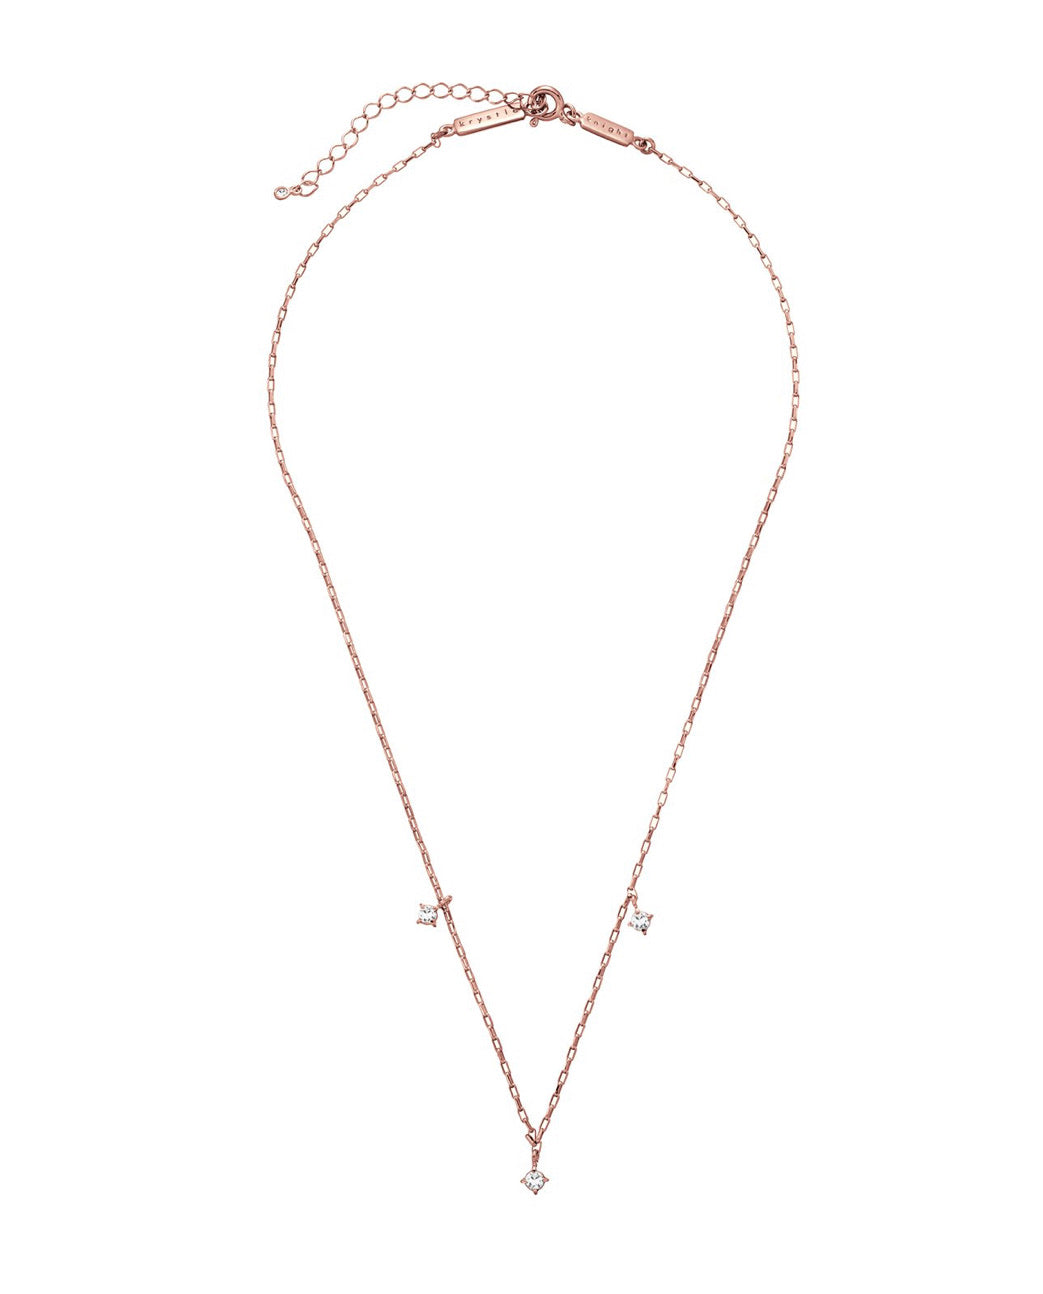 SHIMMERING PRECIOUS NECKLACE- ROSE GOLD- WHITE SAPPHIRE